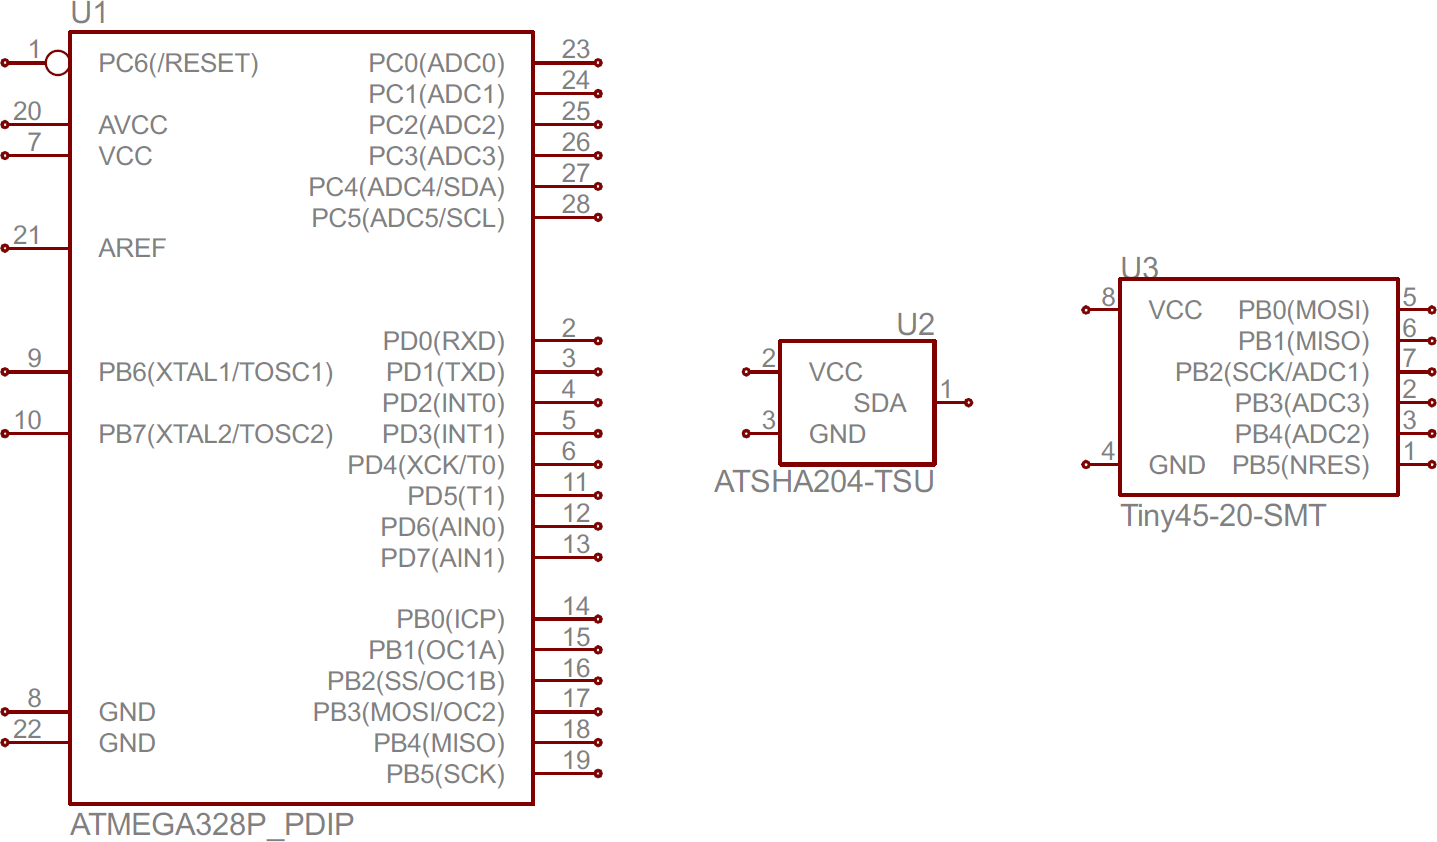 How To Read A Schematic Guitar Cable Wiring Diagram Atmega328 Atsha204 And Attiny45 Ic Symbols